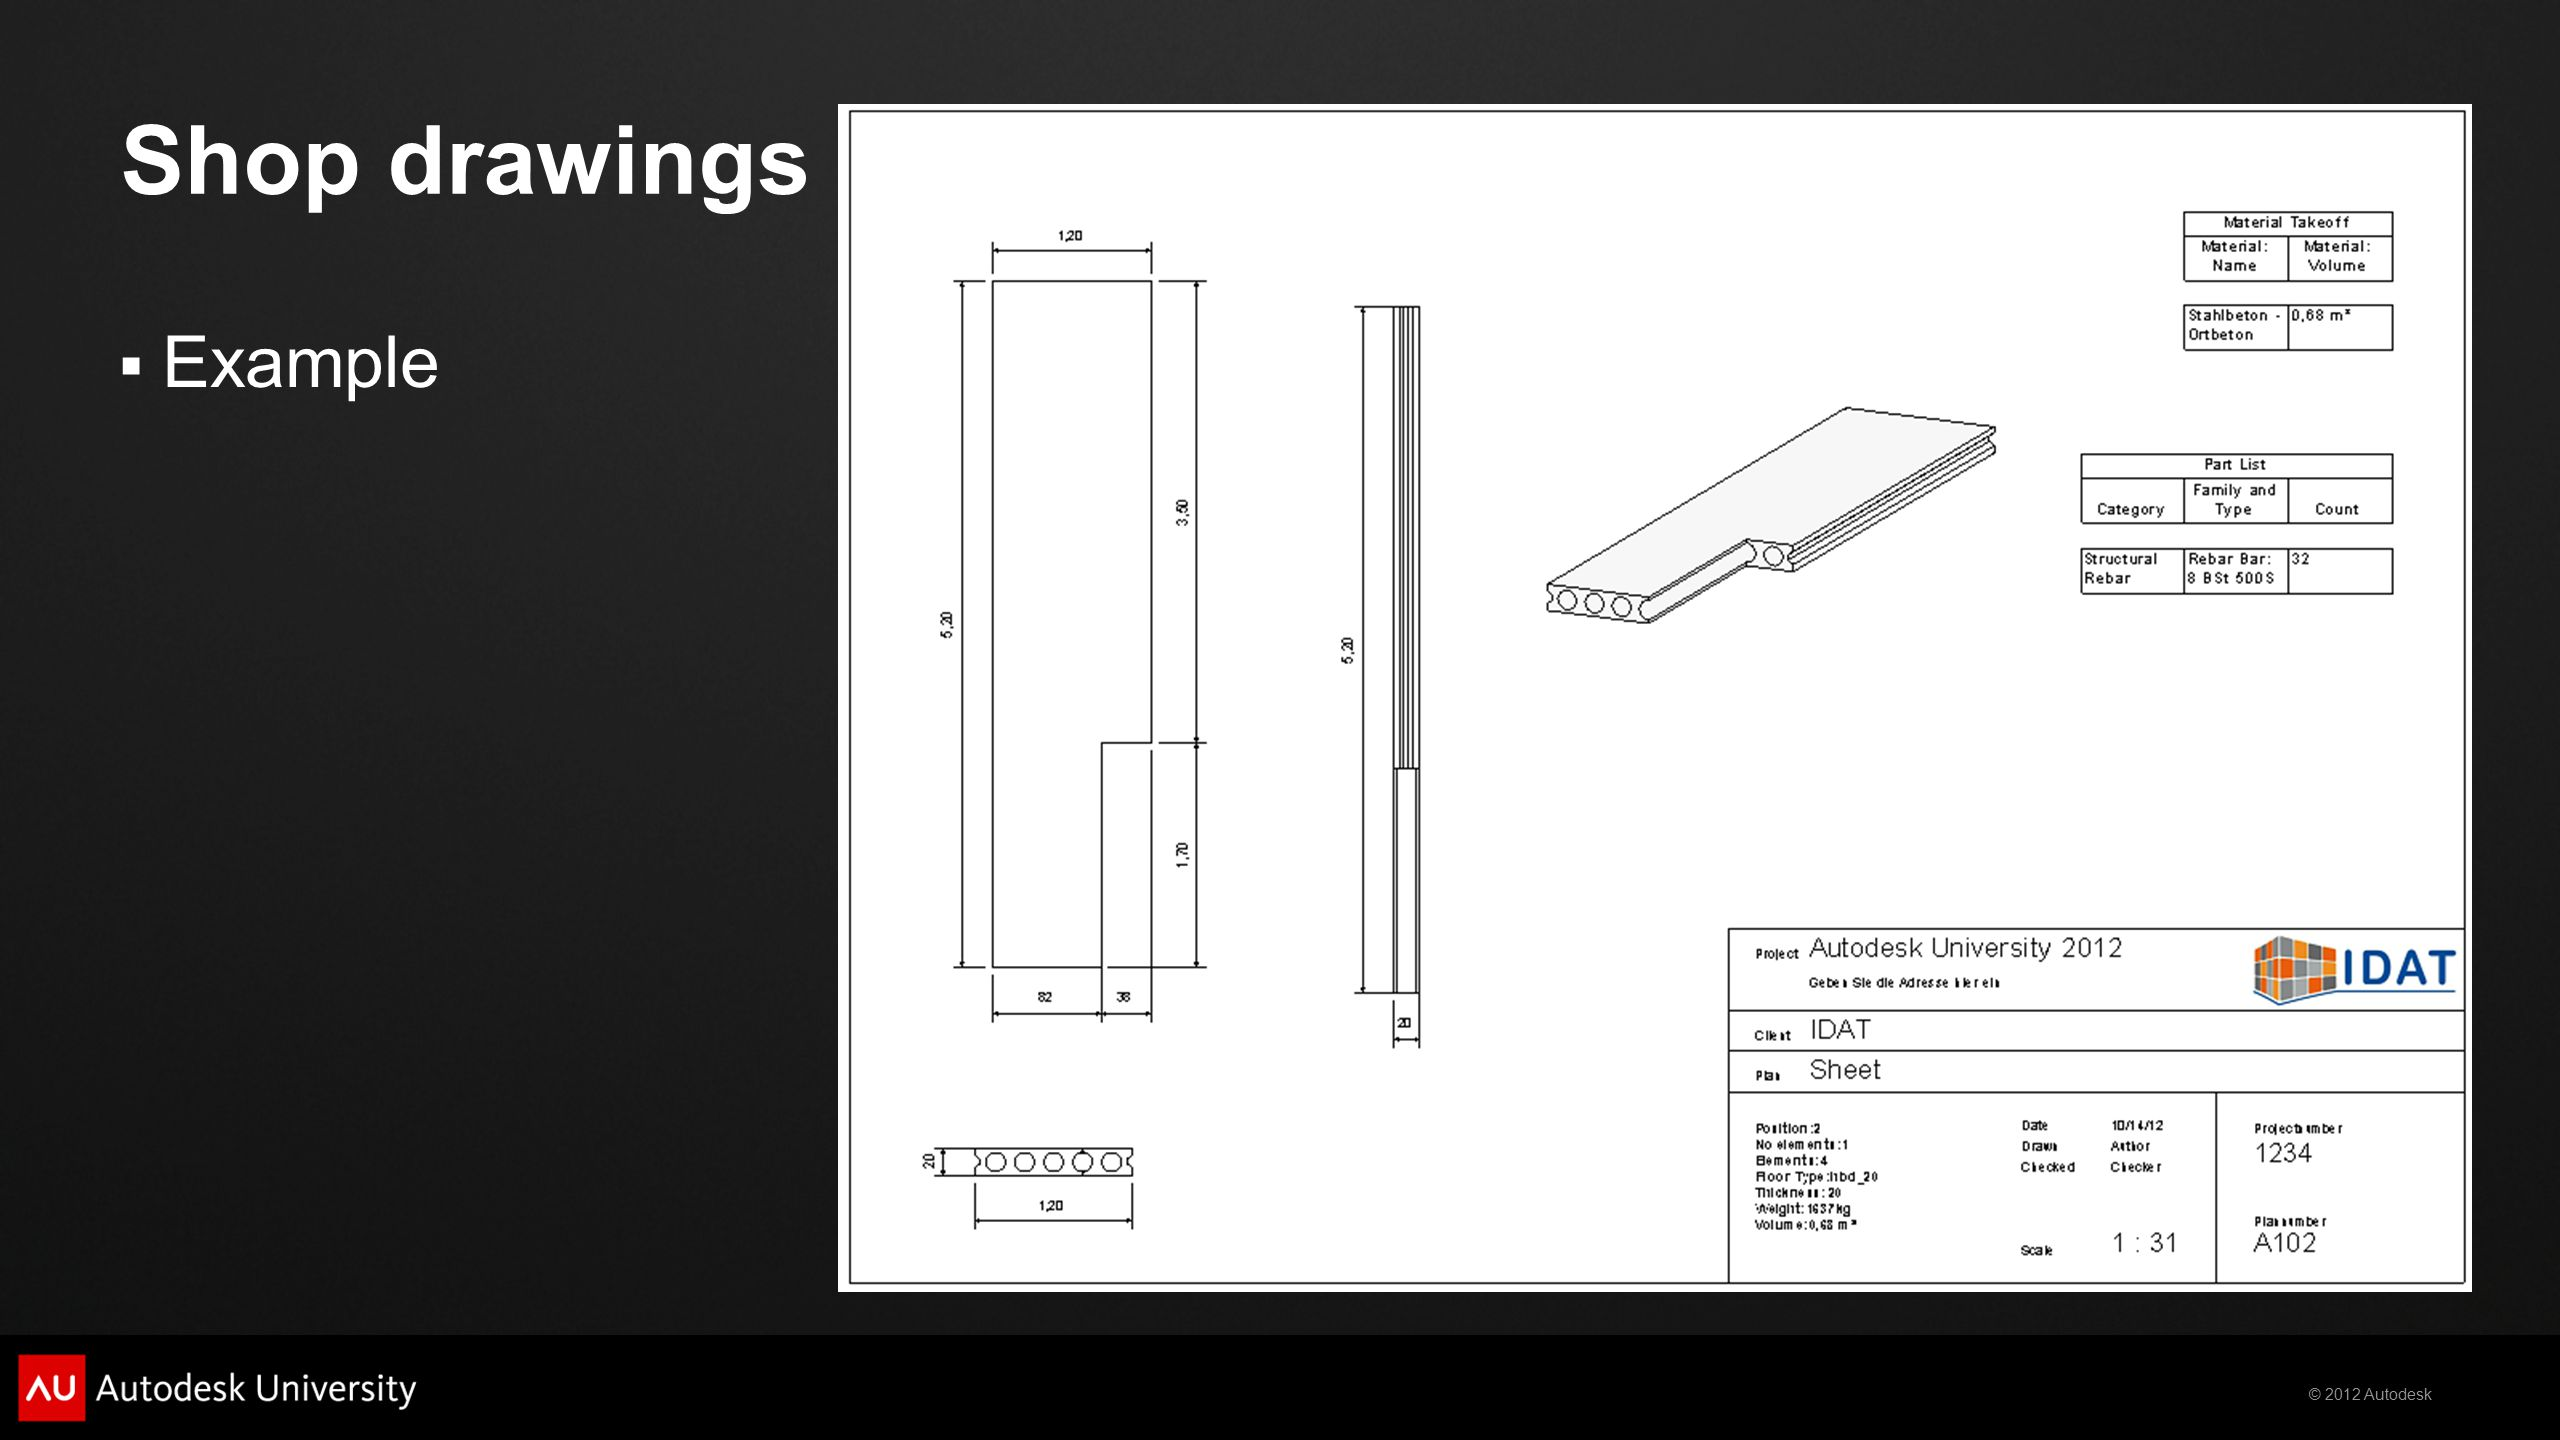 Shop drawings Example